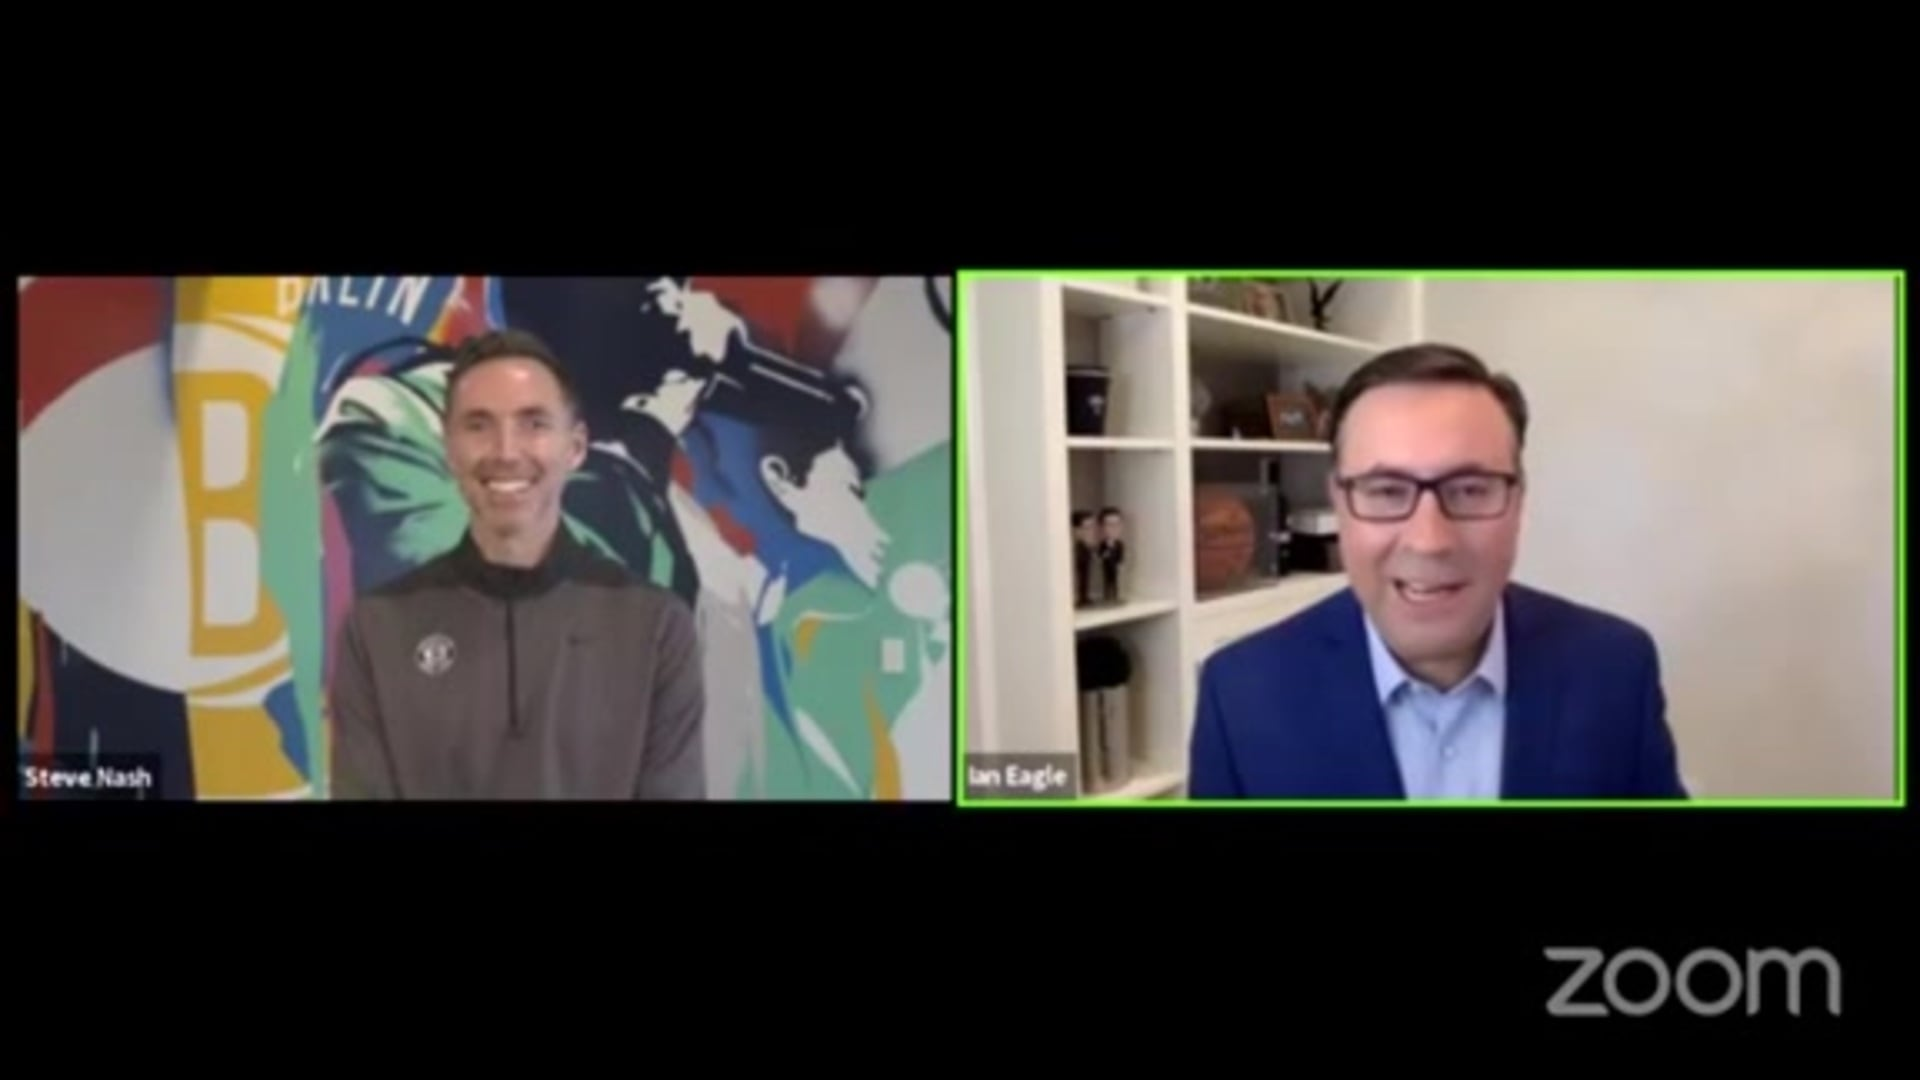 Virtual Town Hall with Steve Nash